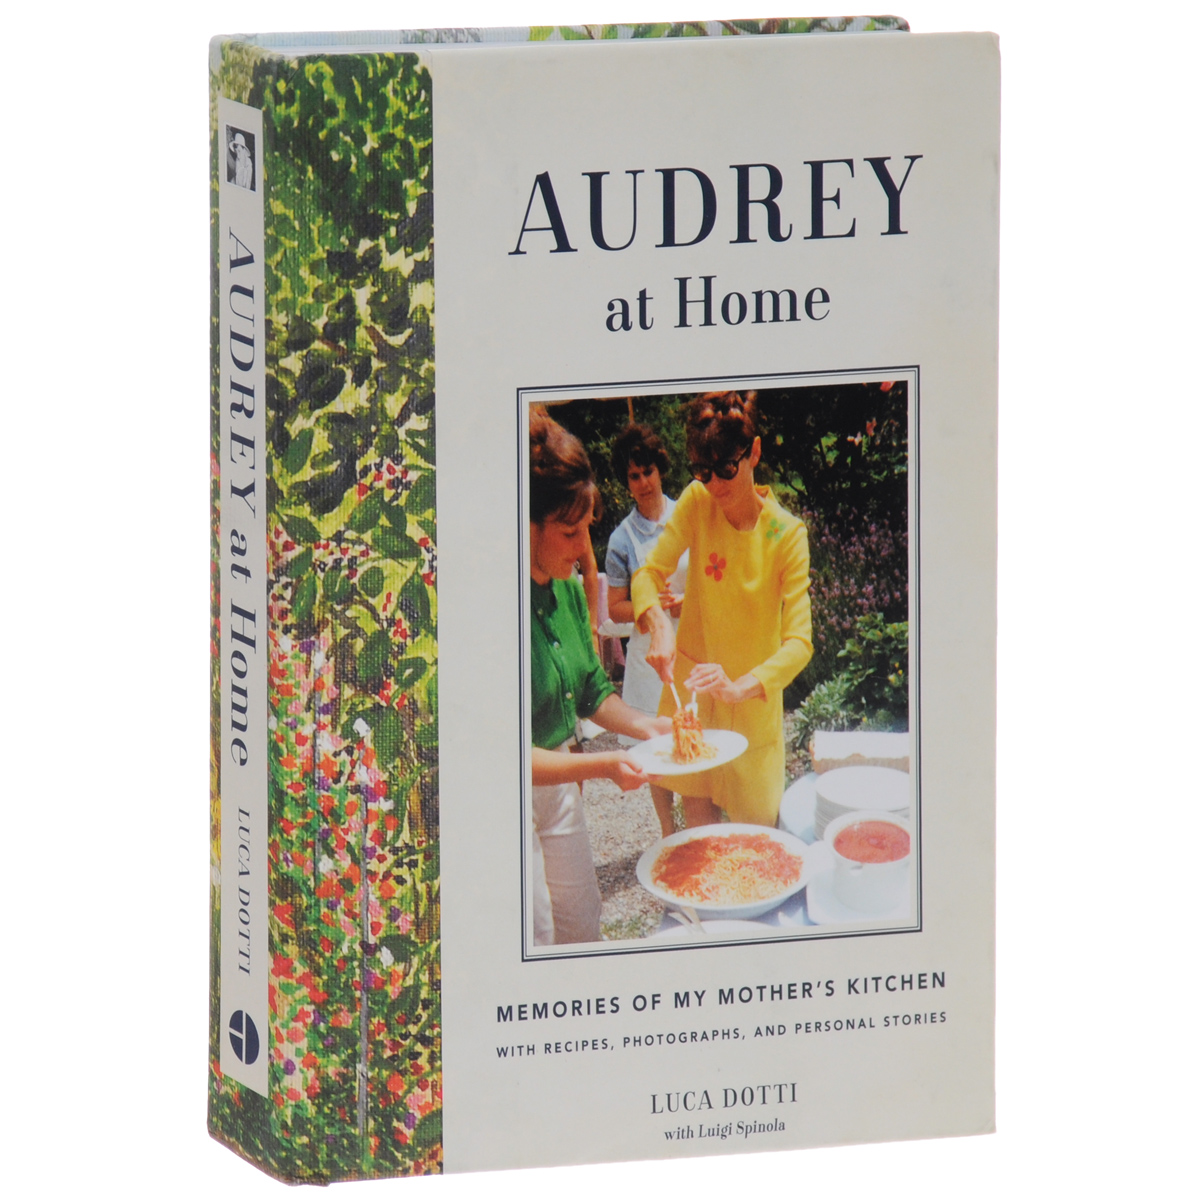 Audrey at Home: Memories of My Mother's Kitchen solitude in pursuit of a singular life in a crowded world